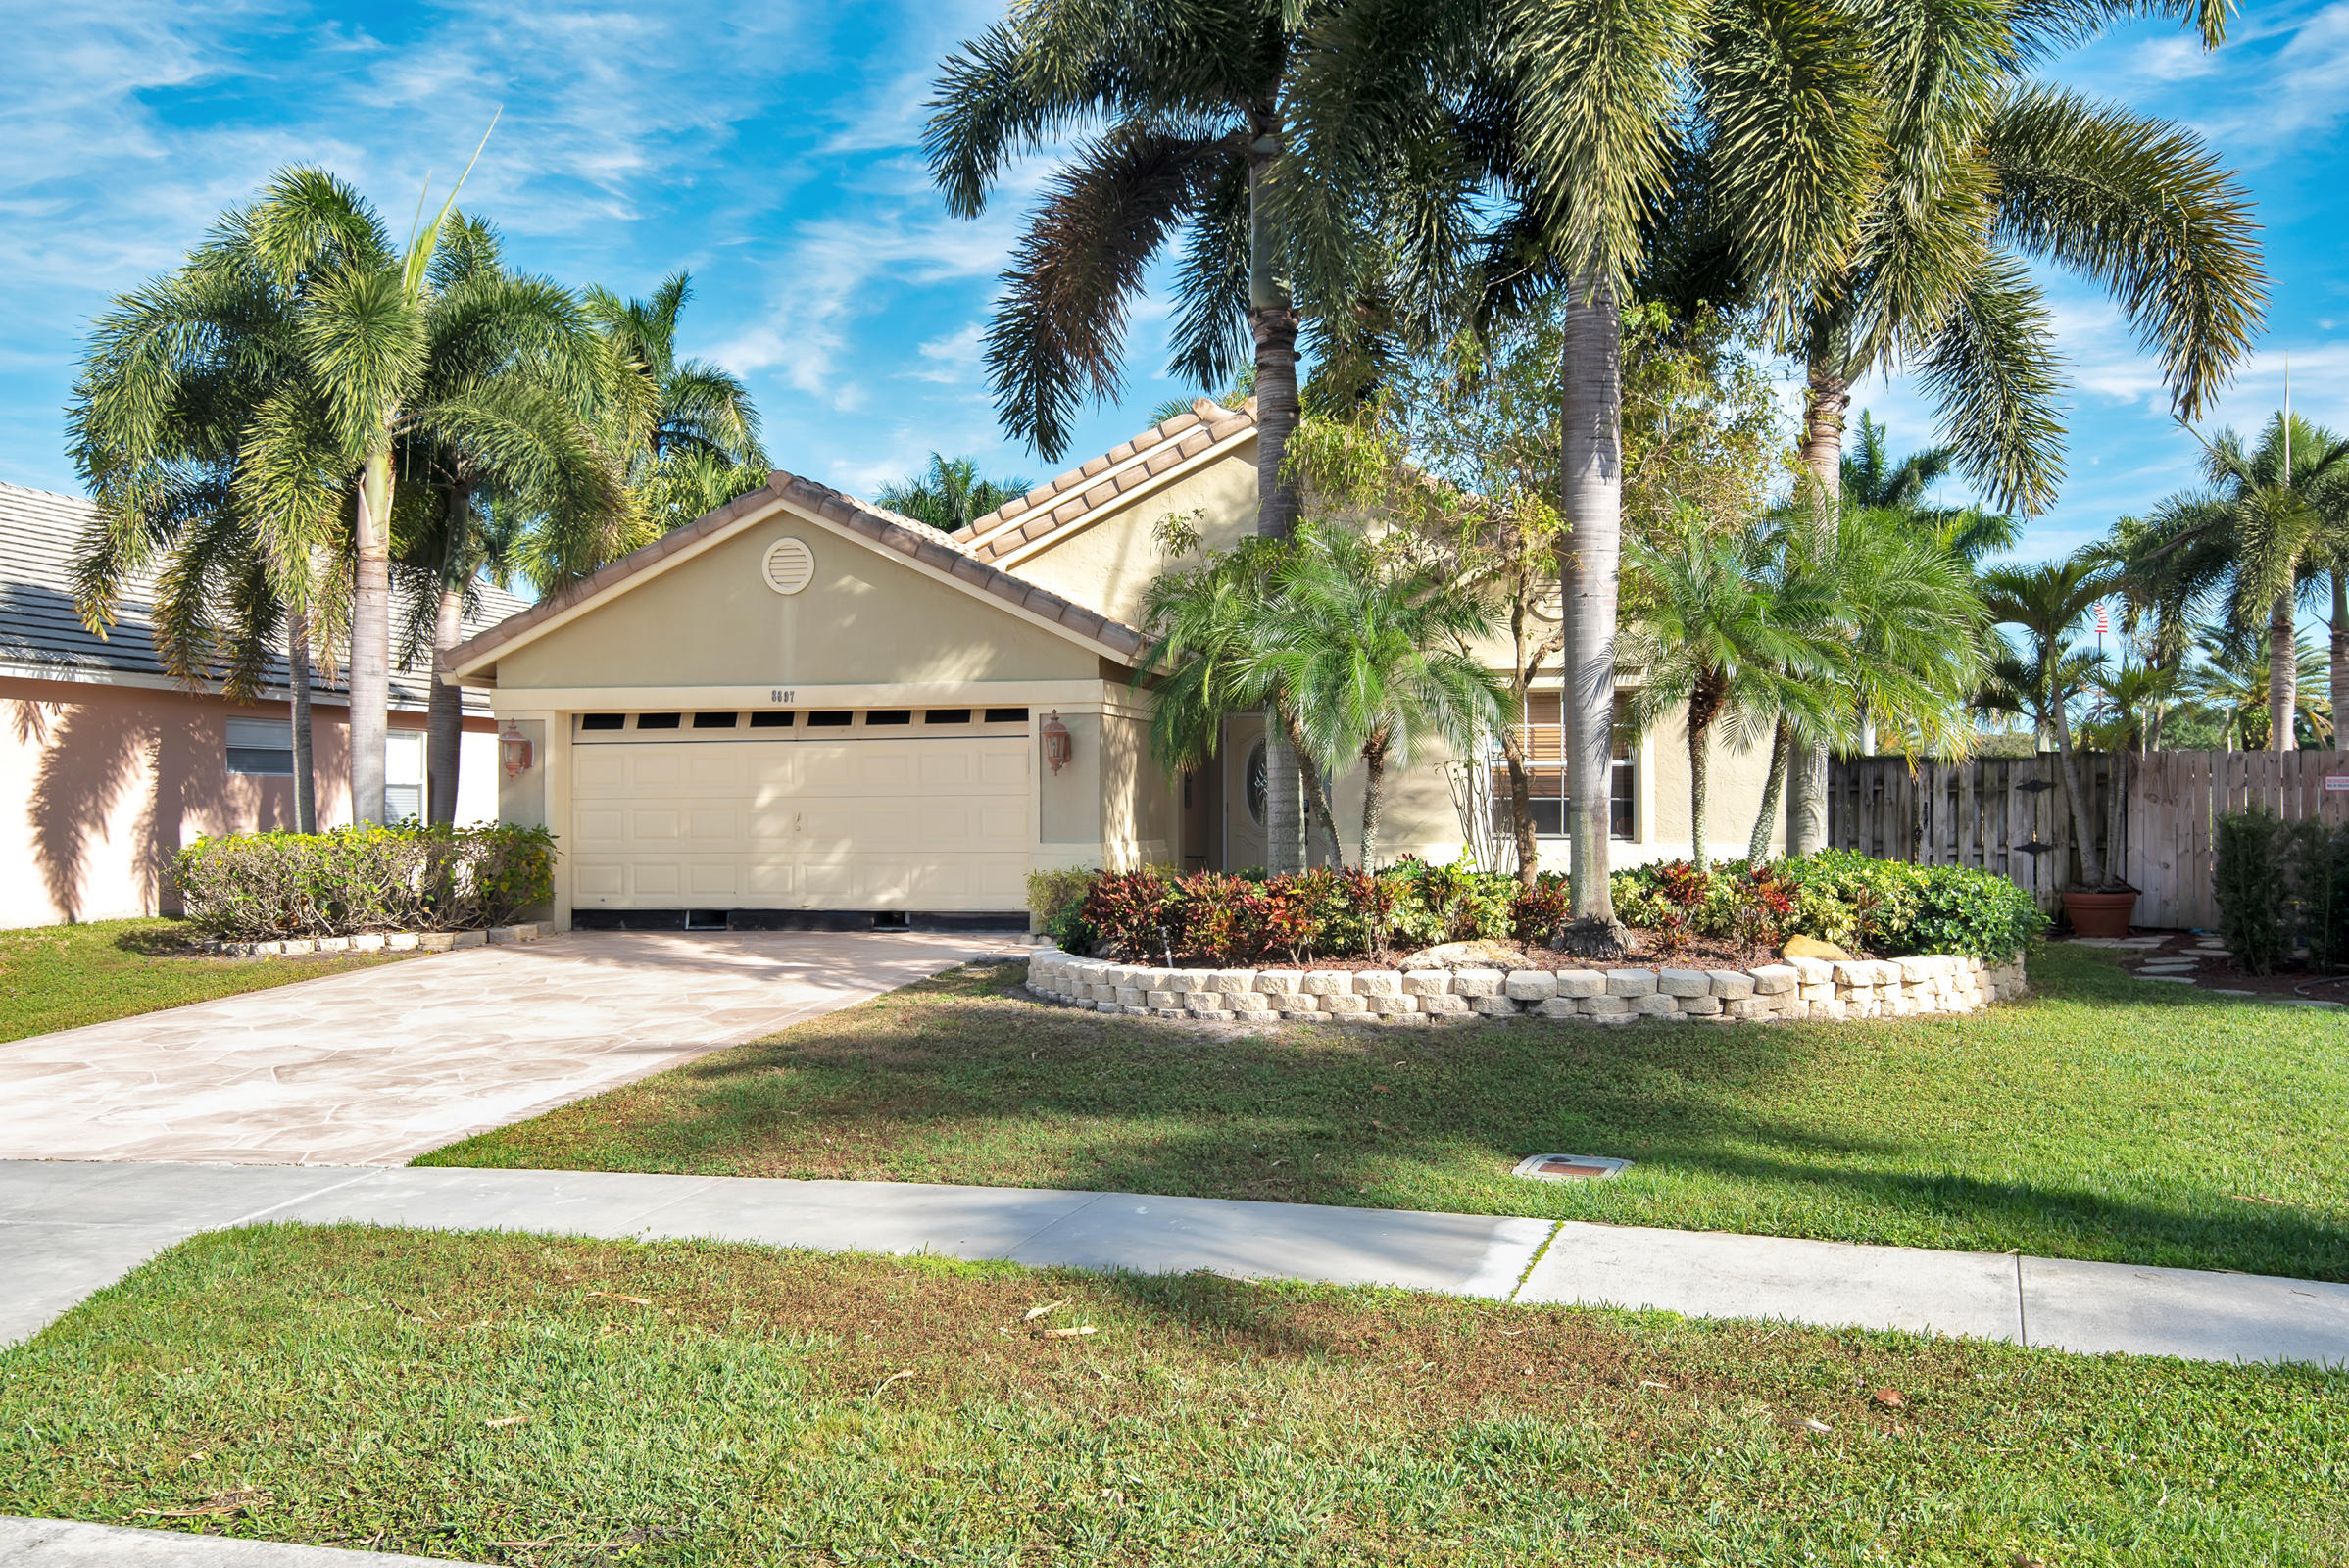 8697  Windy Circle  For Sale 10745465, FL